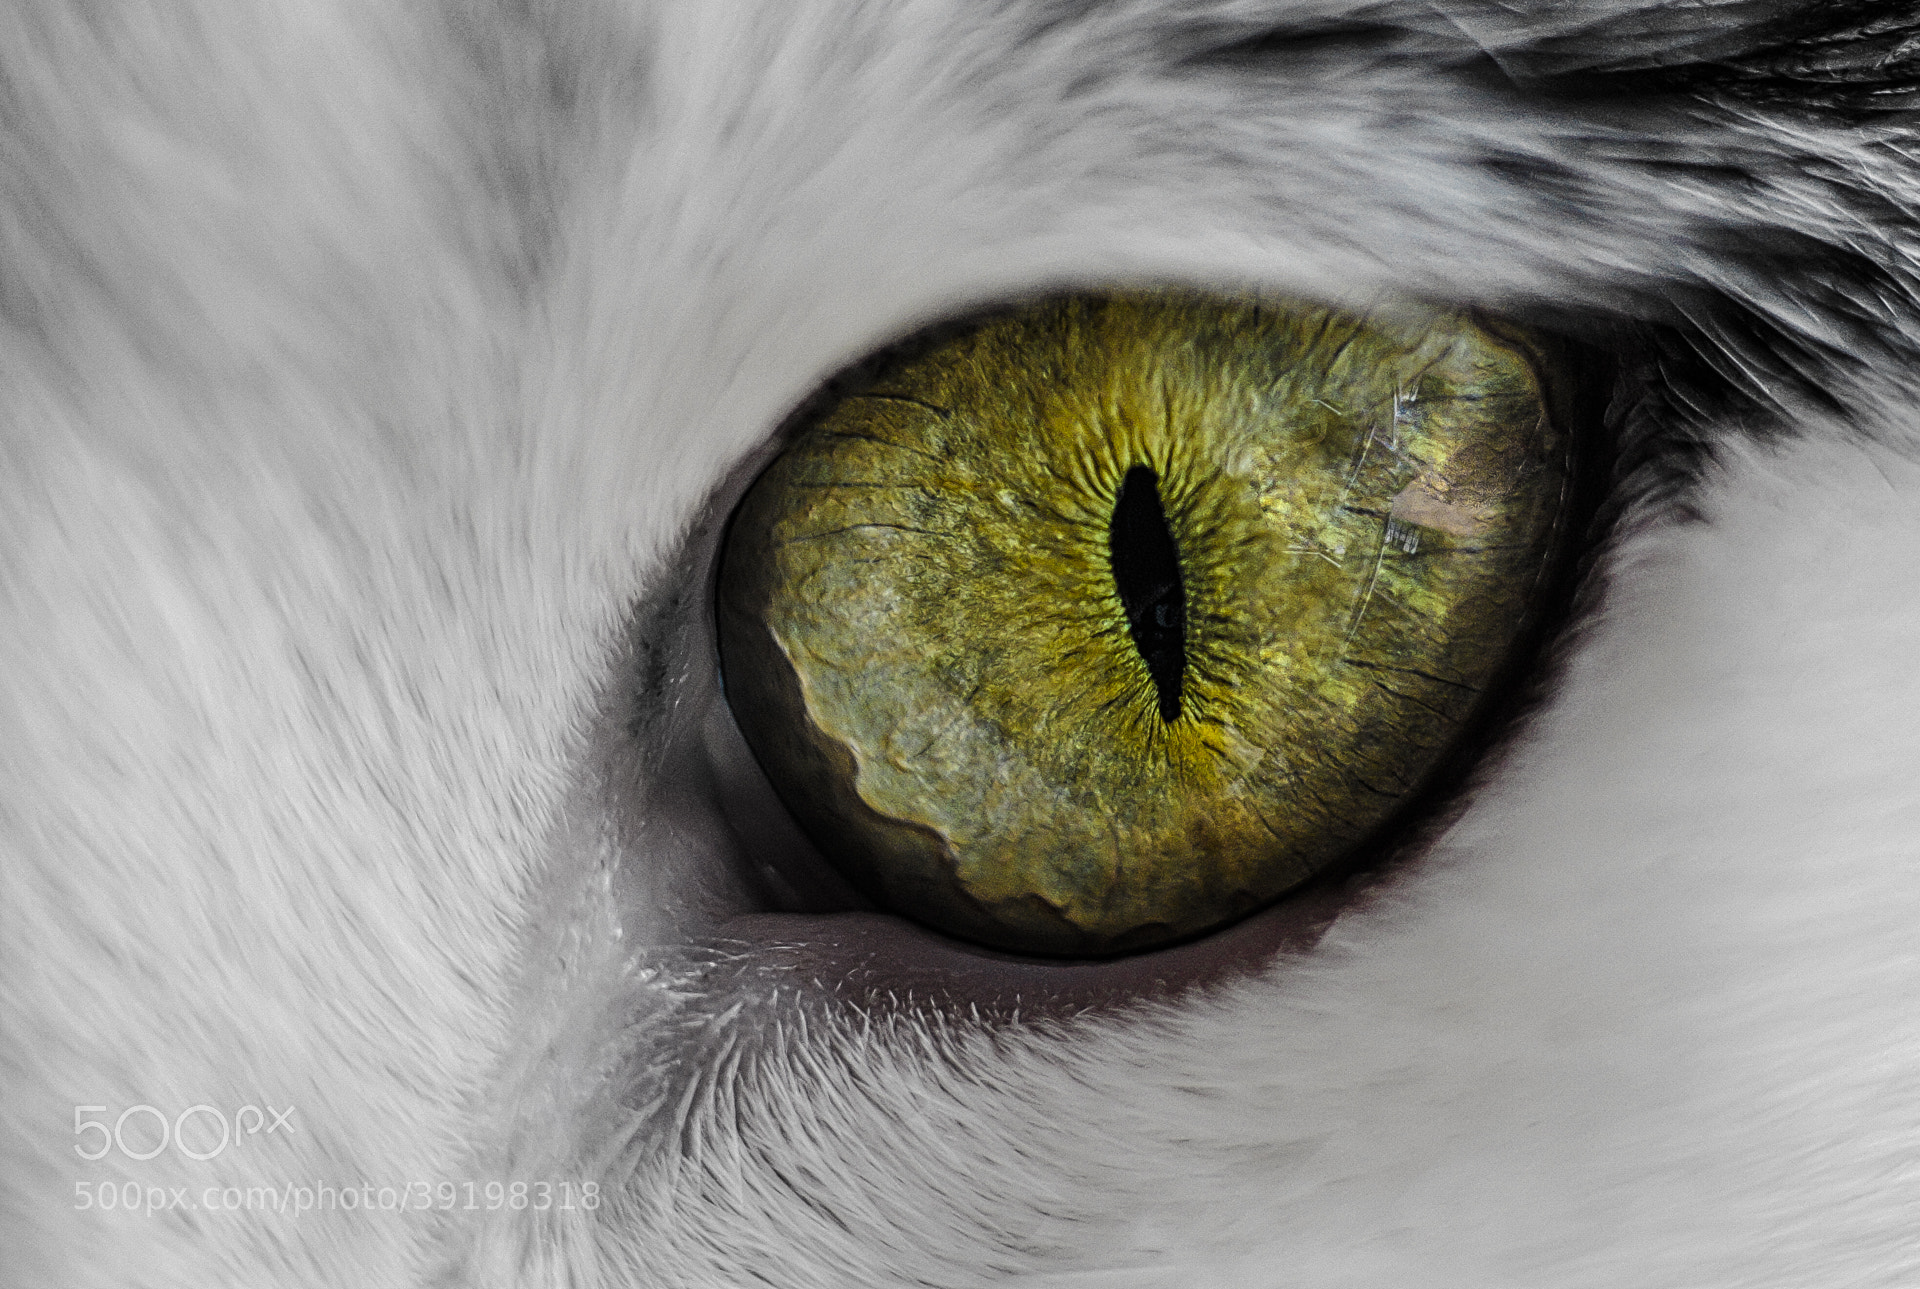 Photograph The Eye II by Phillip Plomer on 500px